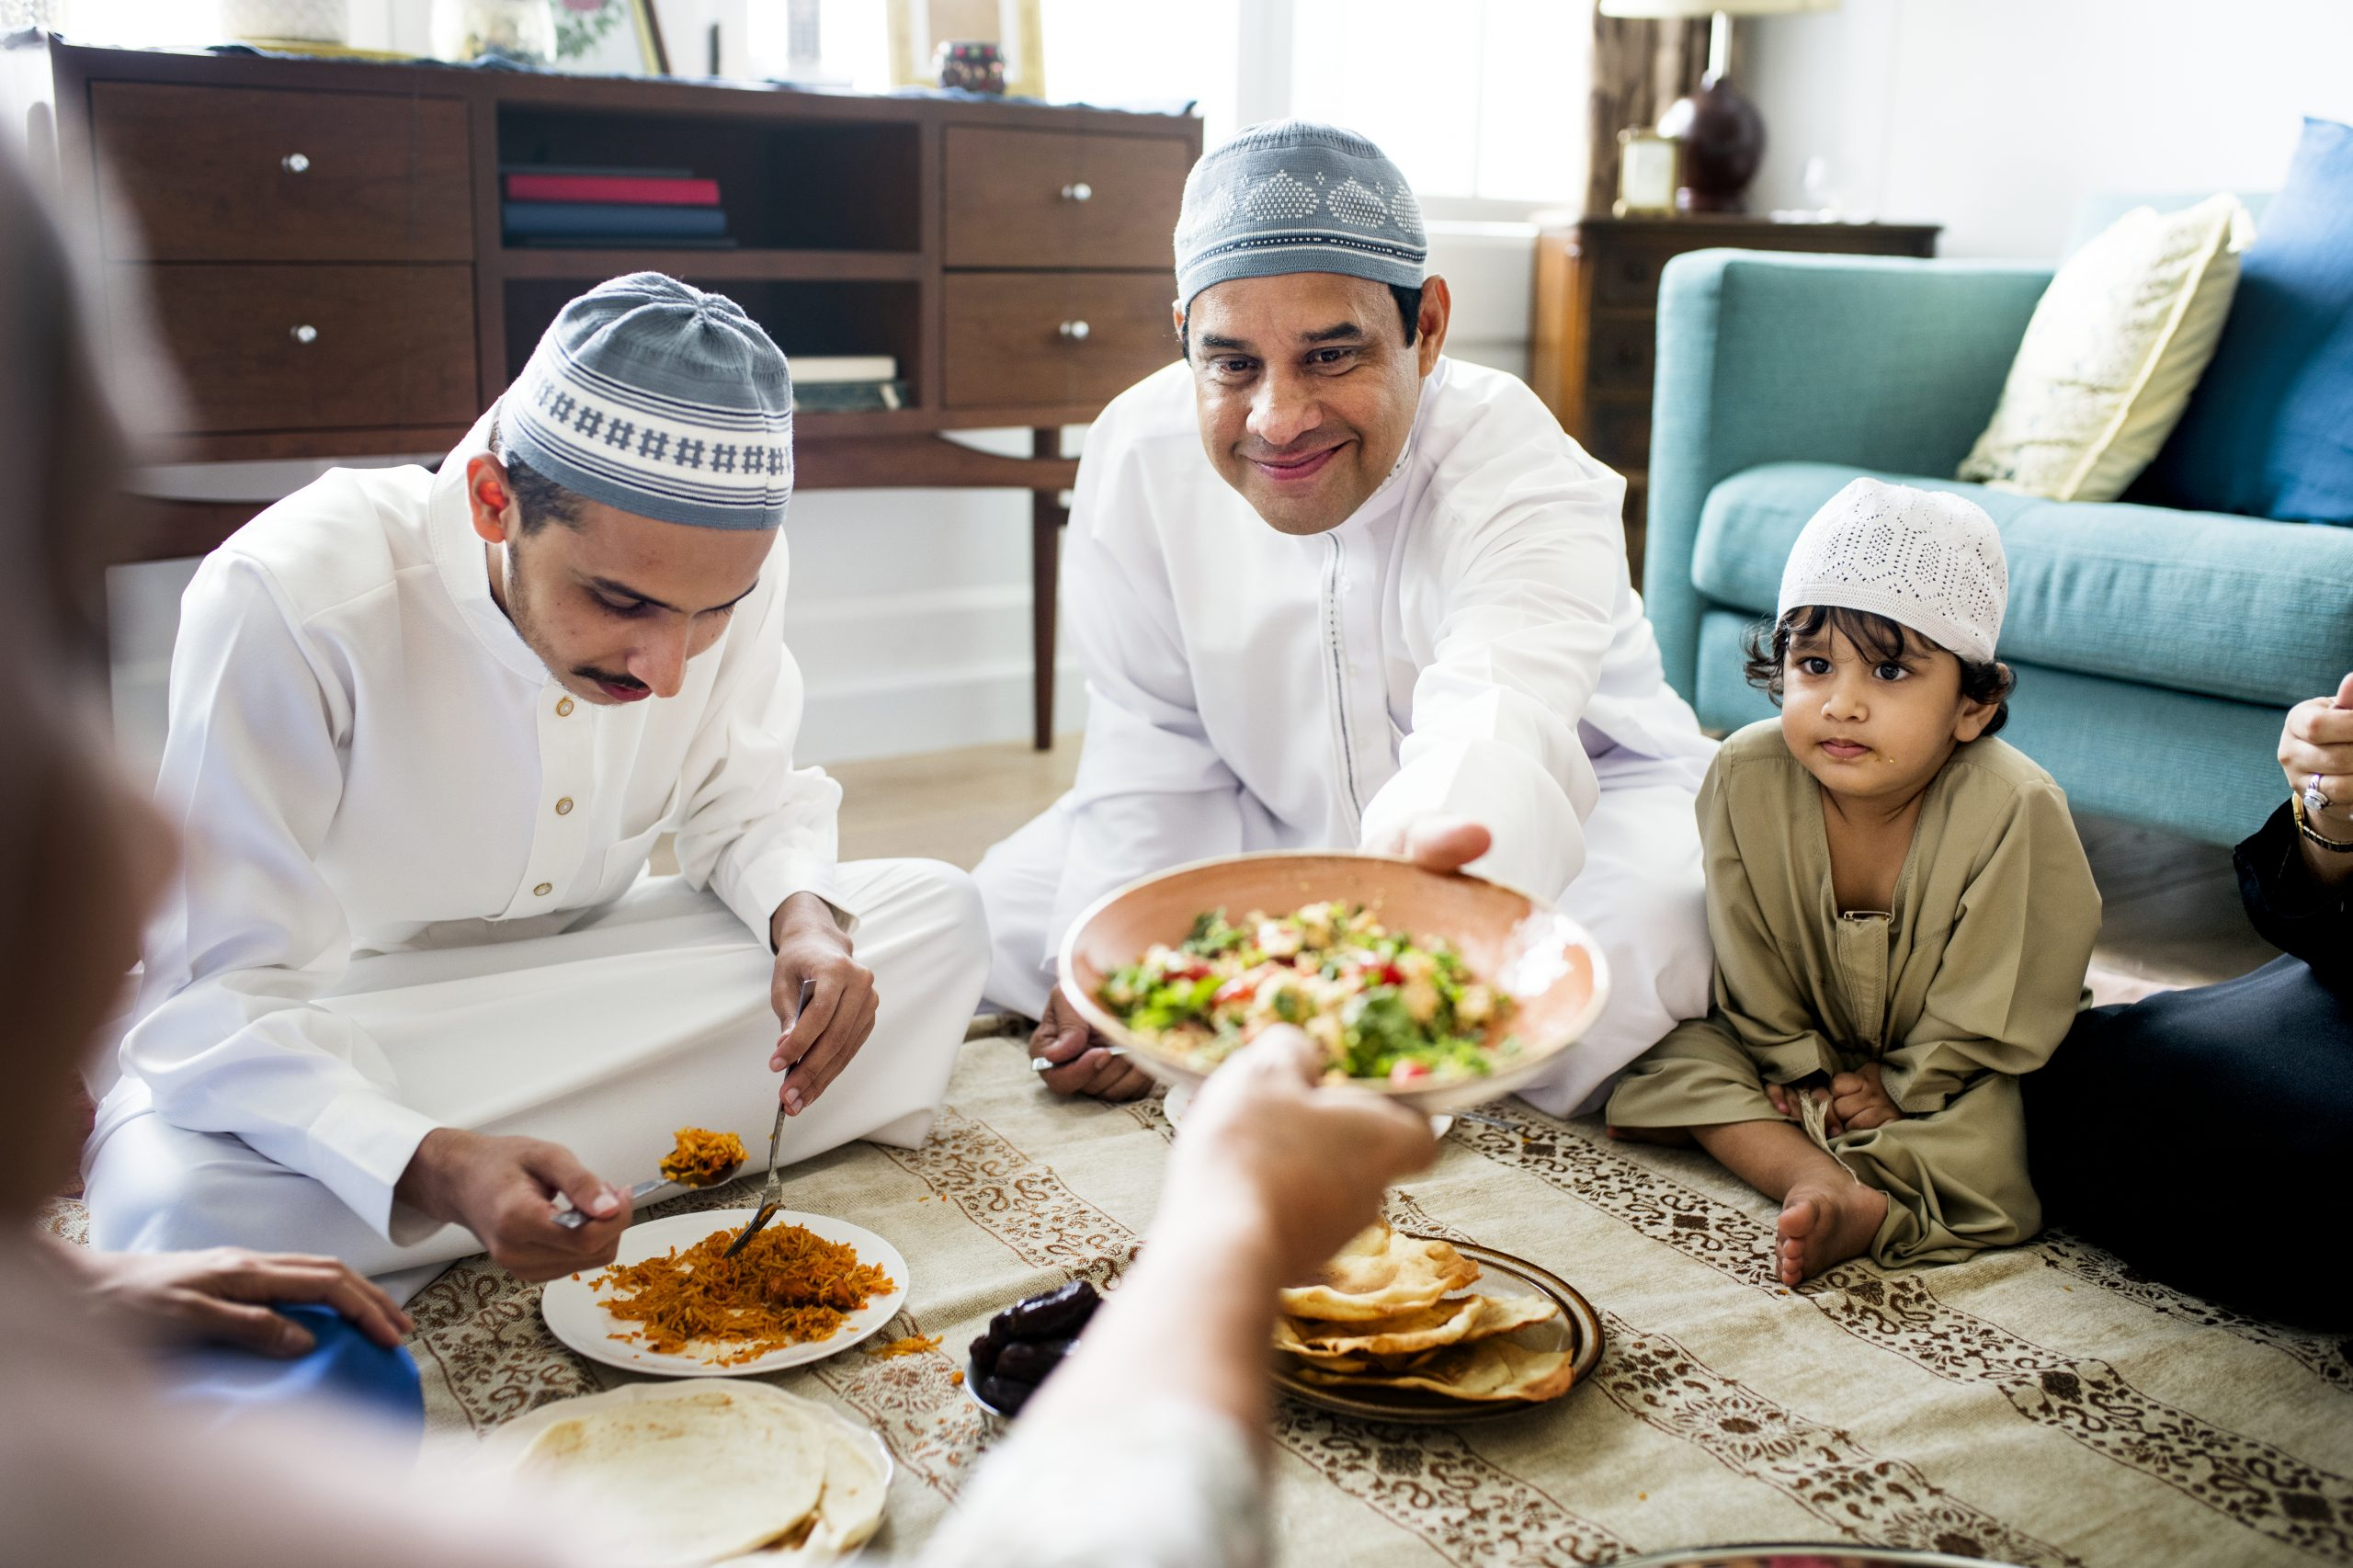 VIRTUAL REALITY: Getting together for iftar meals with family and friends (outside the household) is among the things banned under the lockdown measures